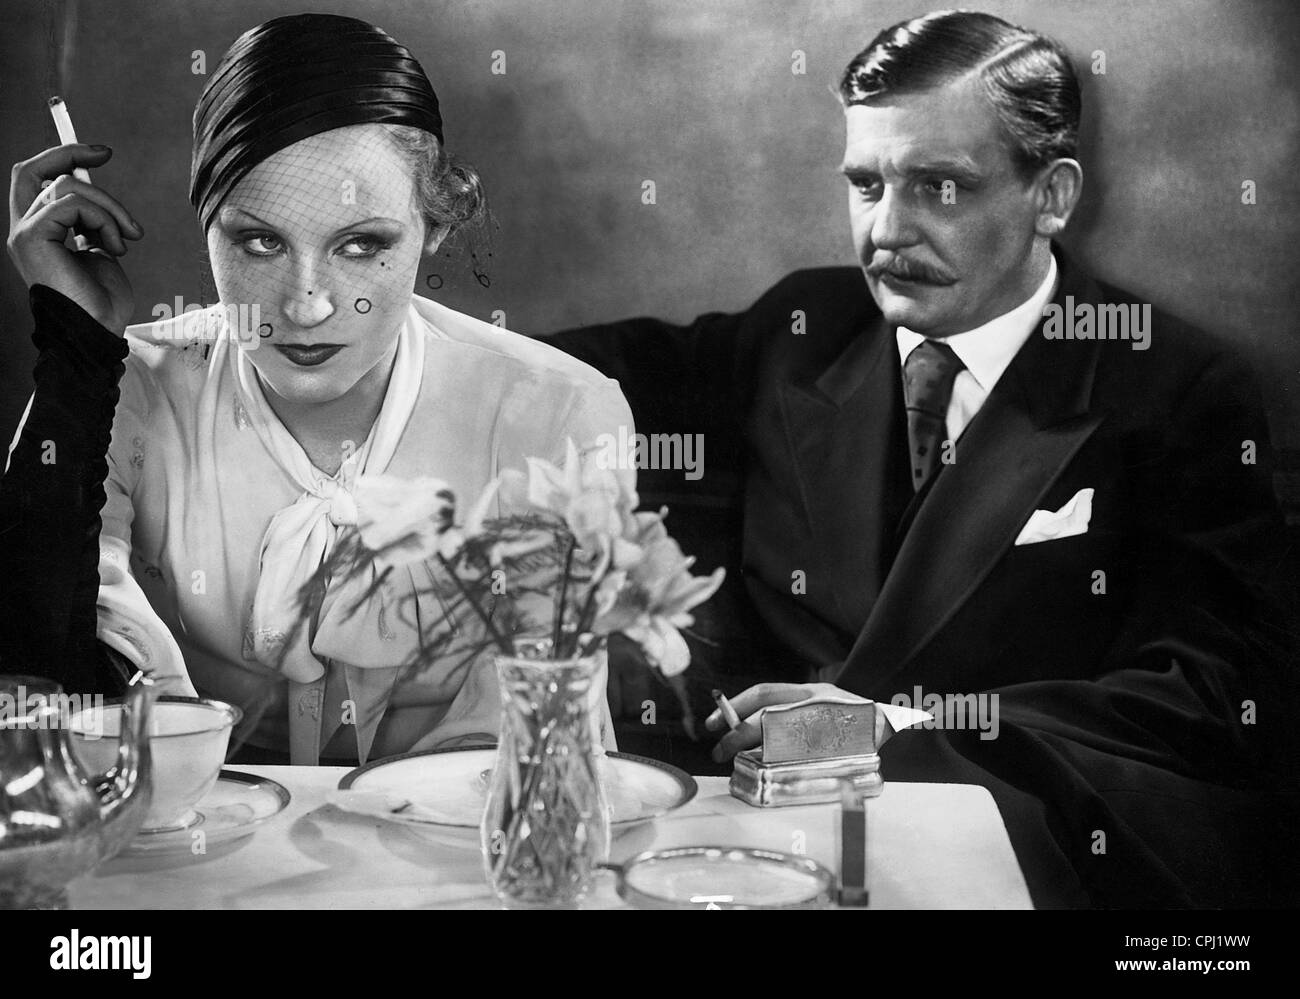 Brigitte Helm and Rudolf Forster in 'The Countess of Monte Christo', 1932 - Stock Image